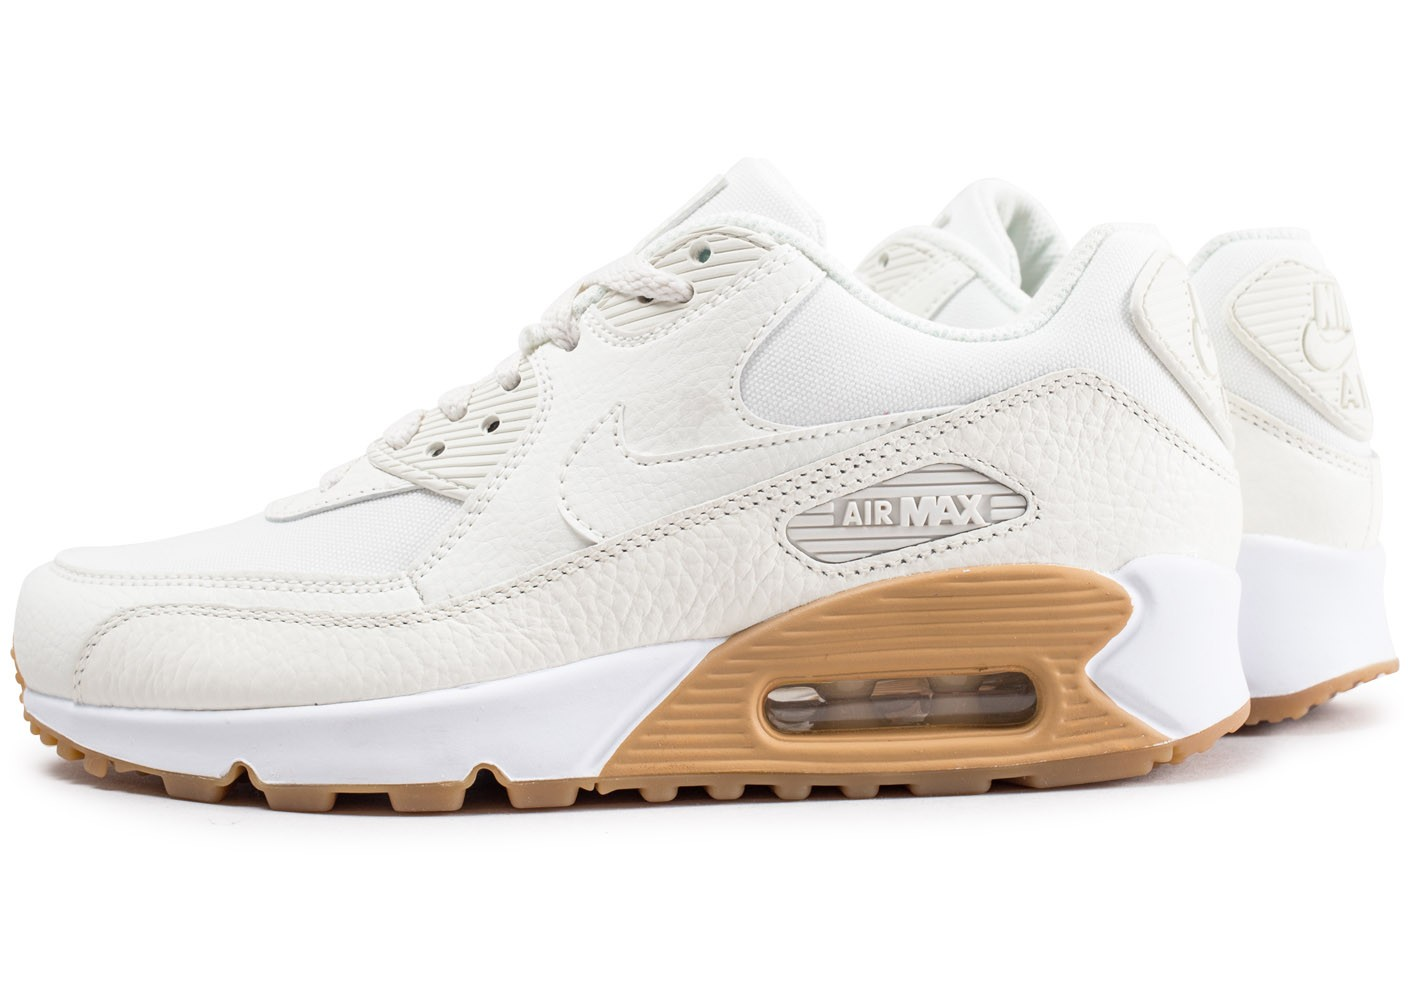 new styles 98a9c dc812 nike air max 90 femme chausport